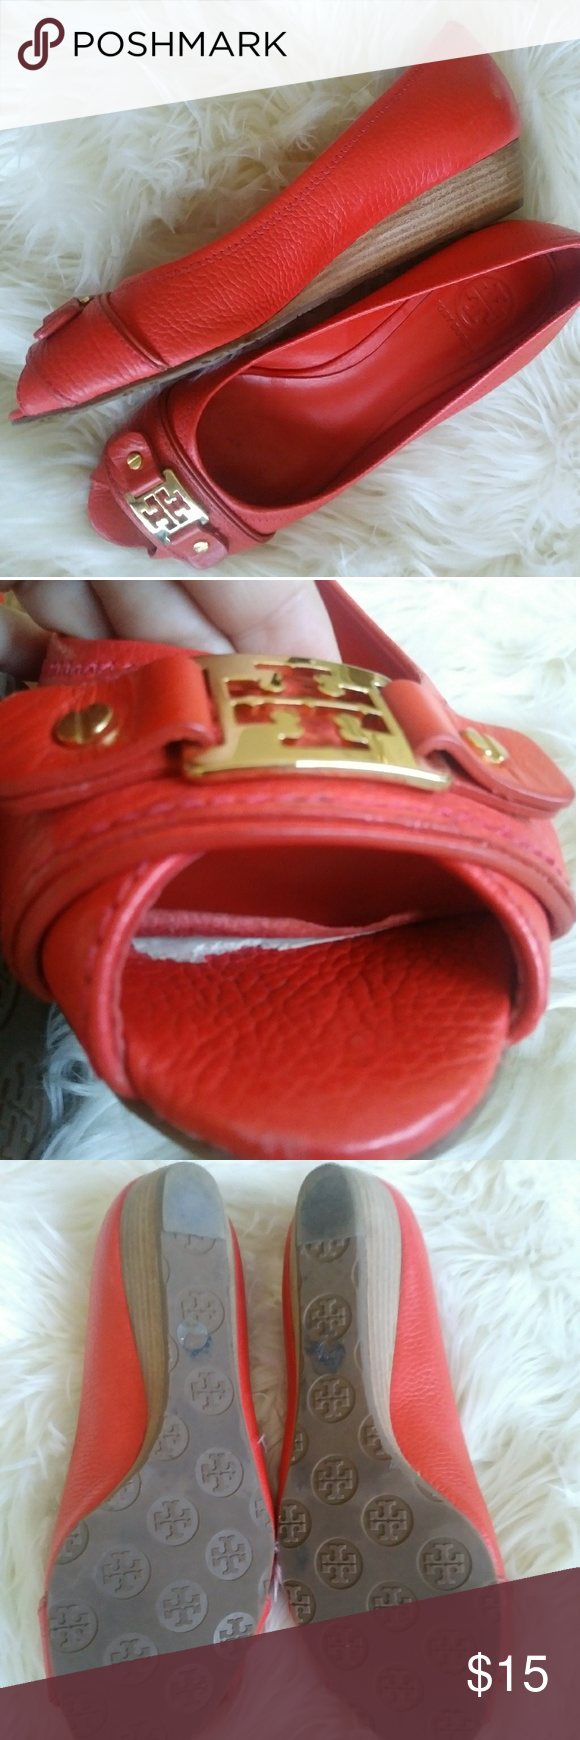 e51a6d78df55 Tory Burch Wedge LOOK ALIKE Leticia in Poppy Take note these are a look  alike.  ) Tory Burch Shoes Wedges